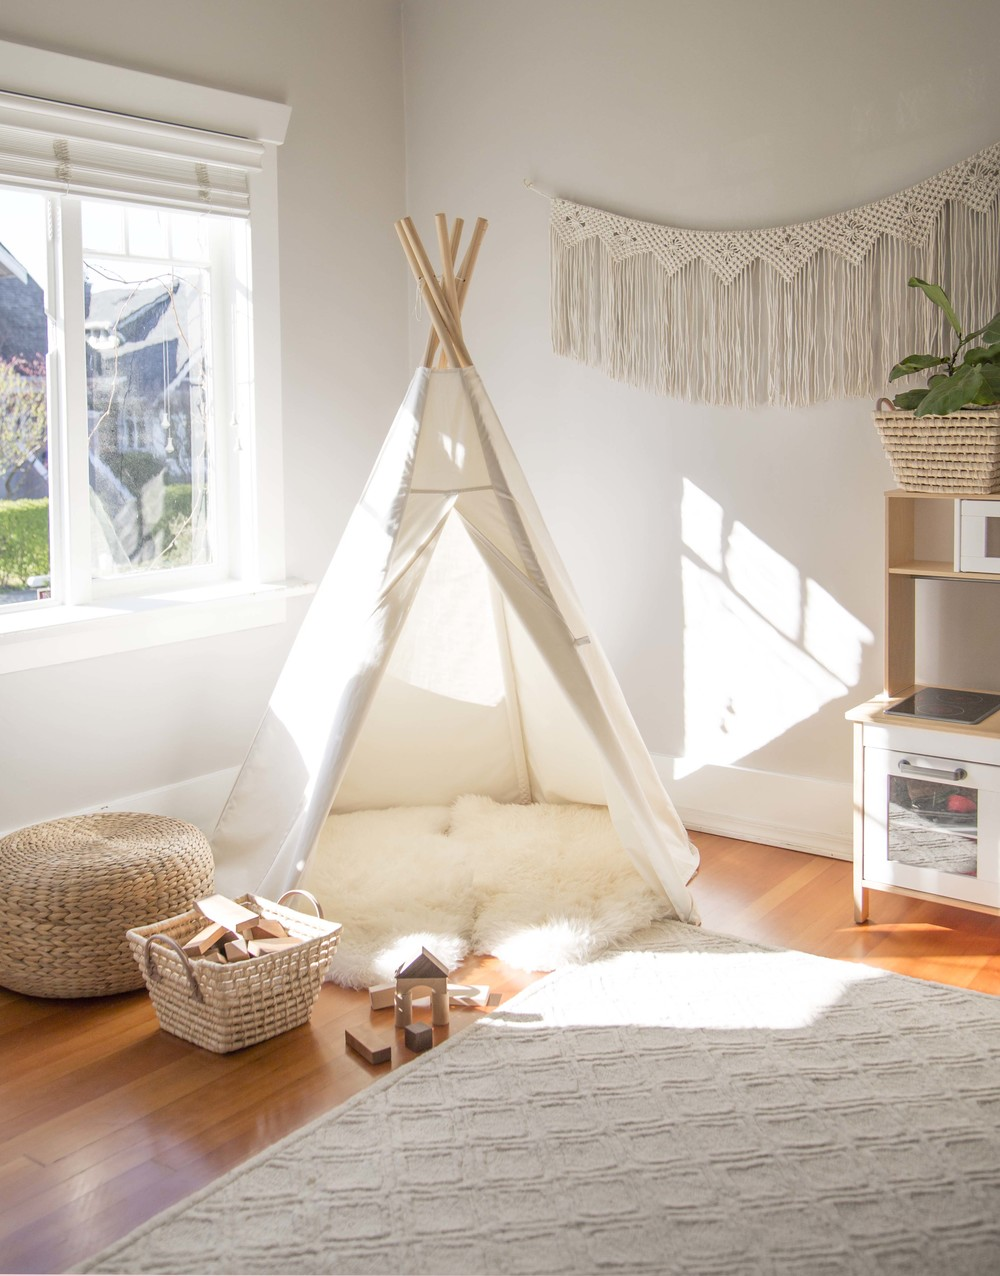 vancouver-interior-design-kids-playroom